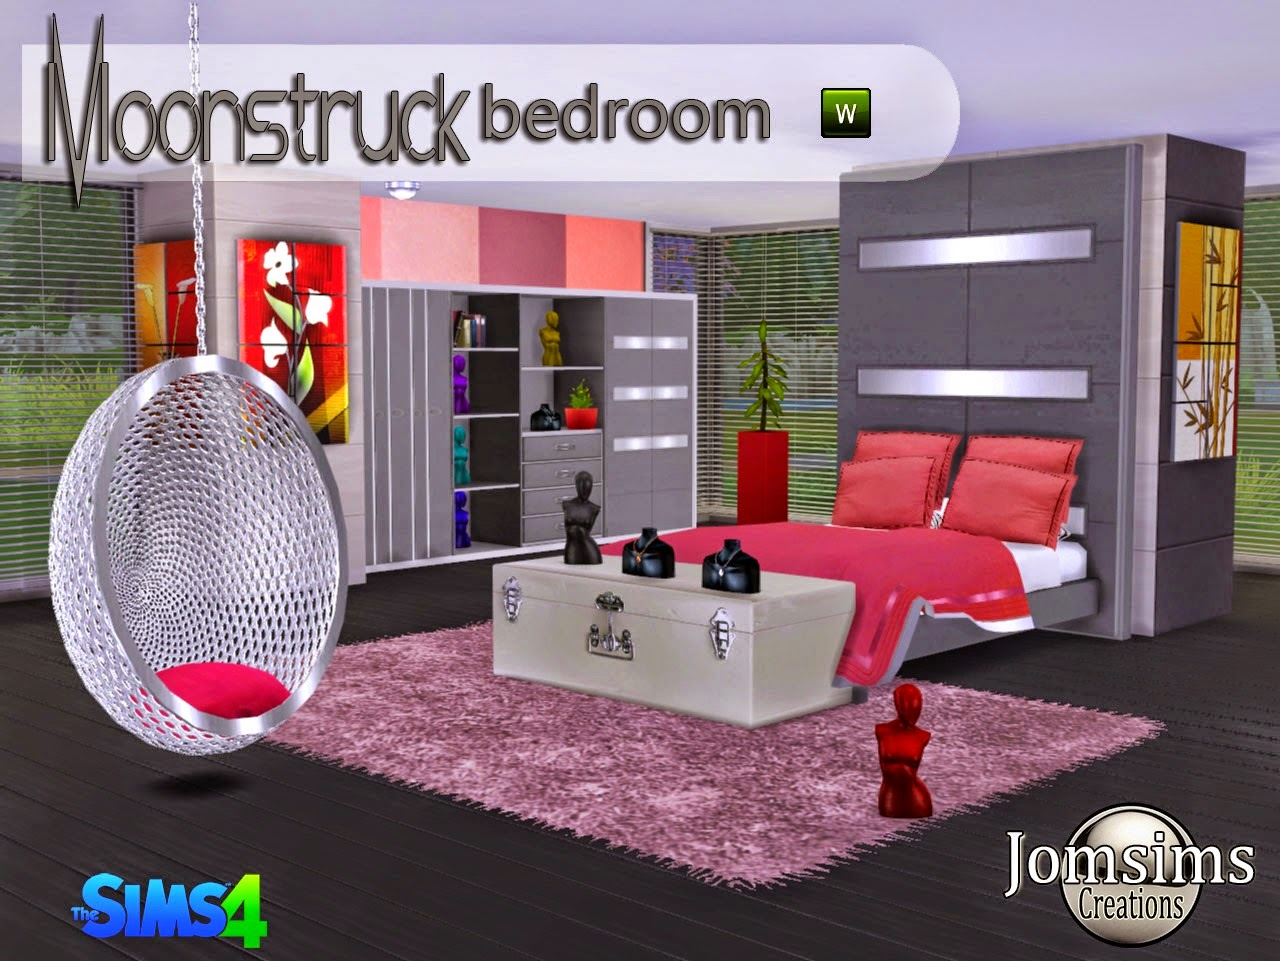 My sims 4 blog moonstruck bedroom set by jomsims for 4 bedroom